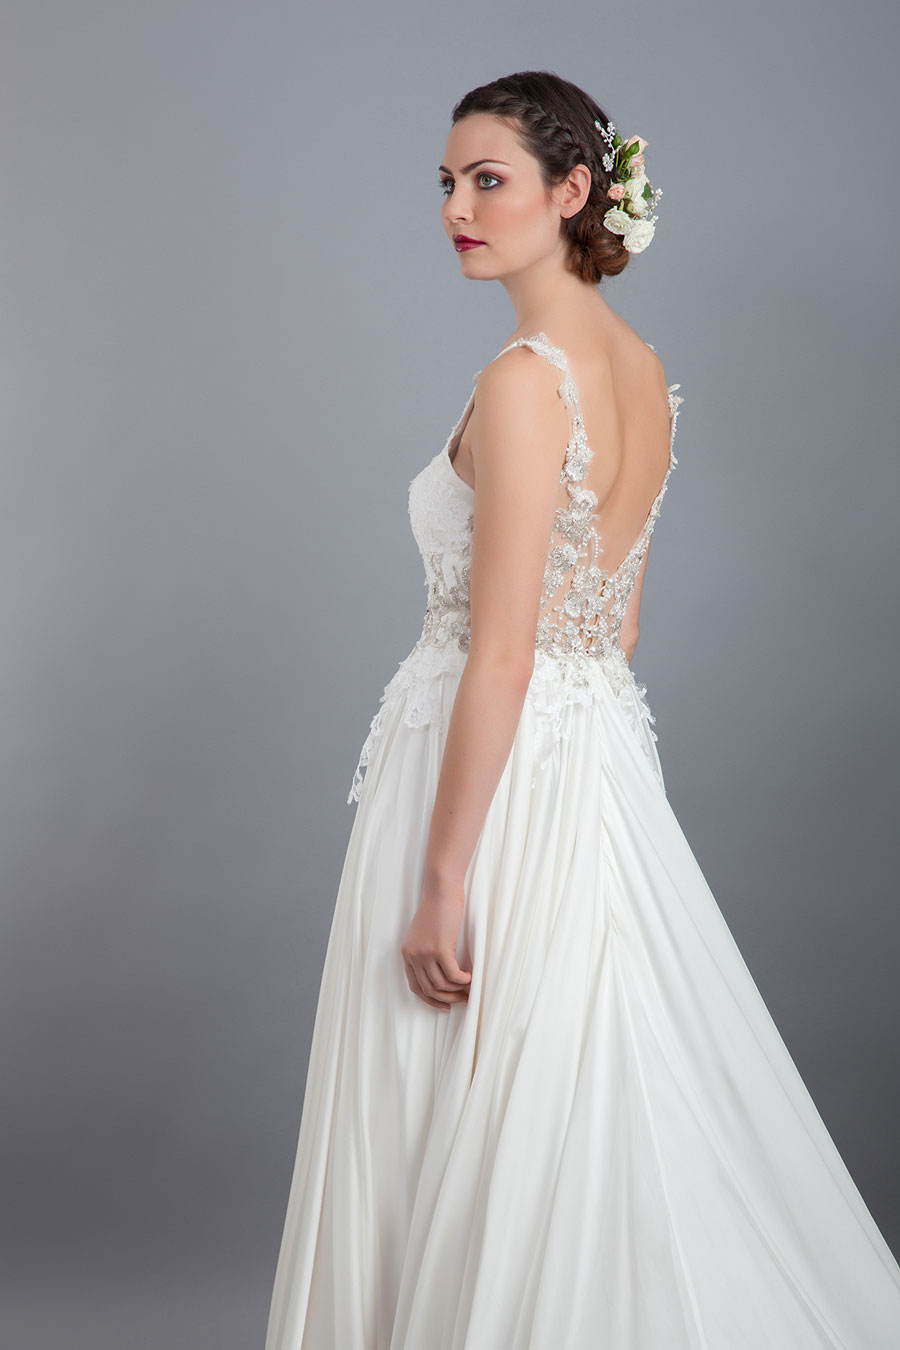 Shanna Melville Launches 2017 Bridal Collection- Wildflowers! (and it's so pretty)0023